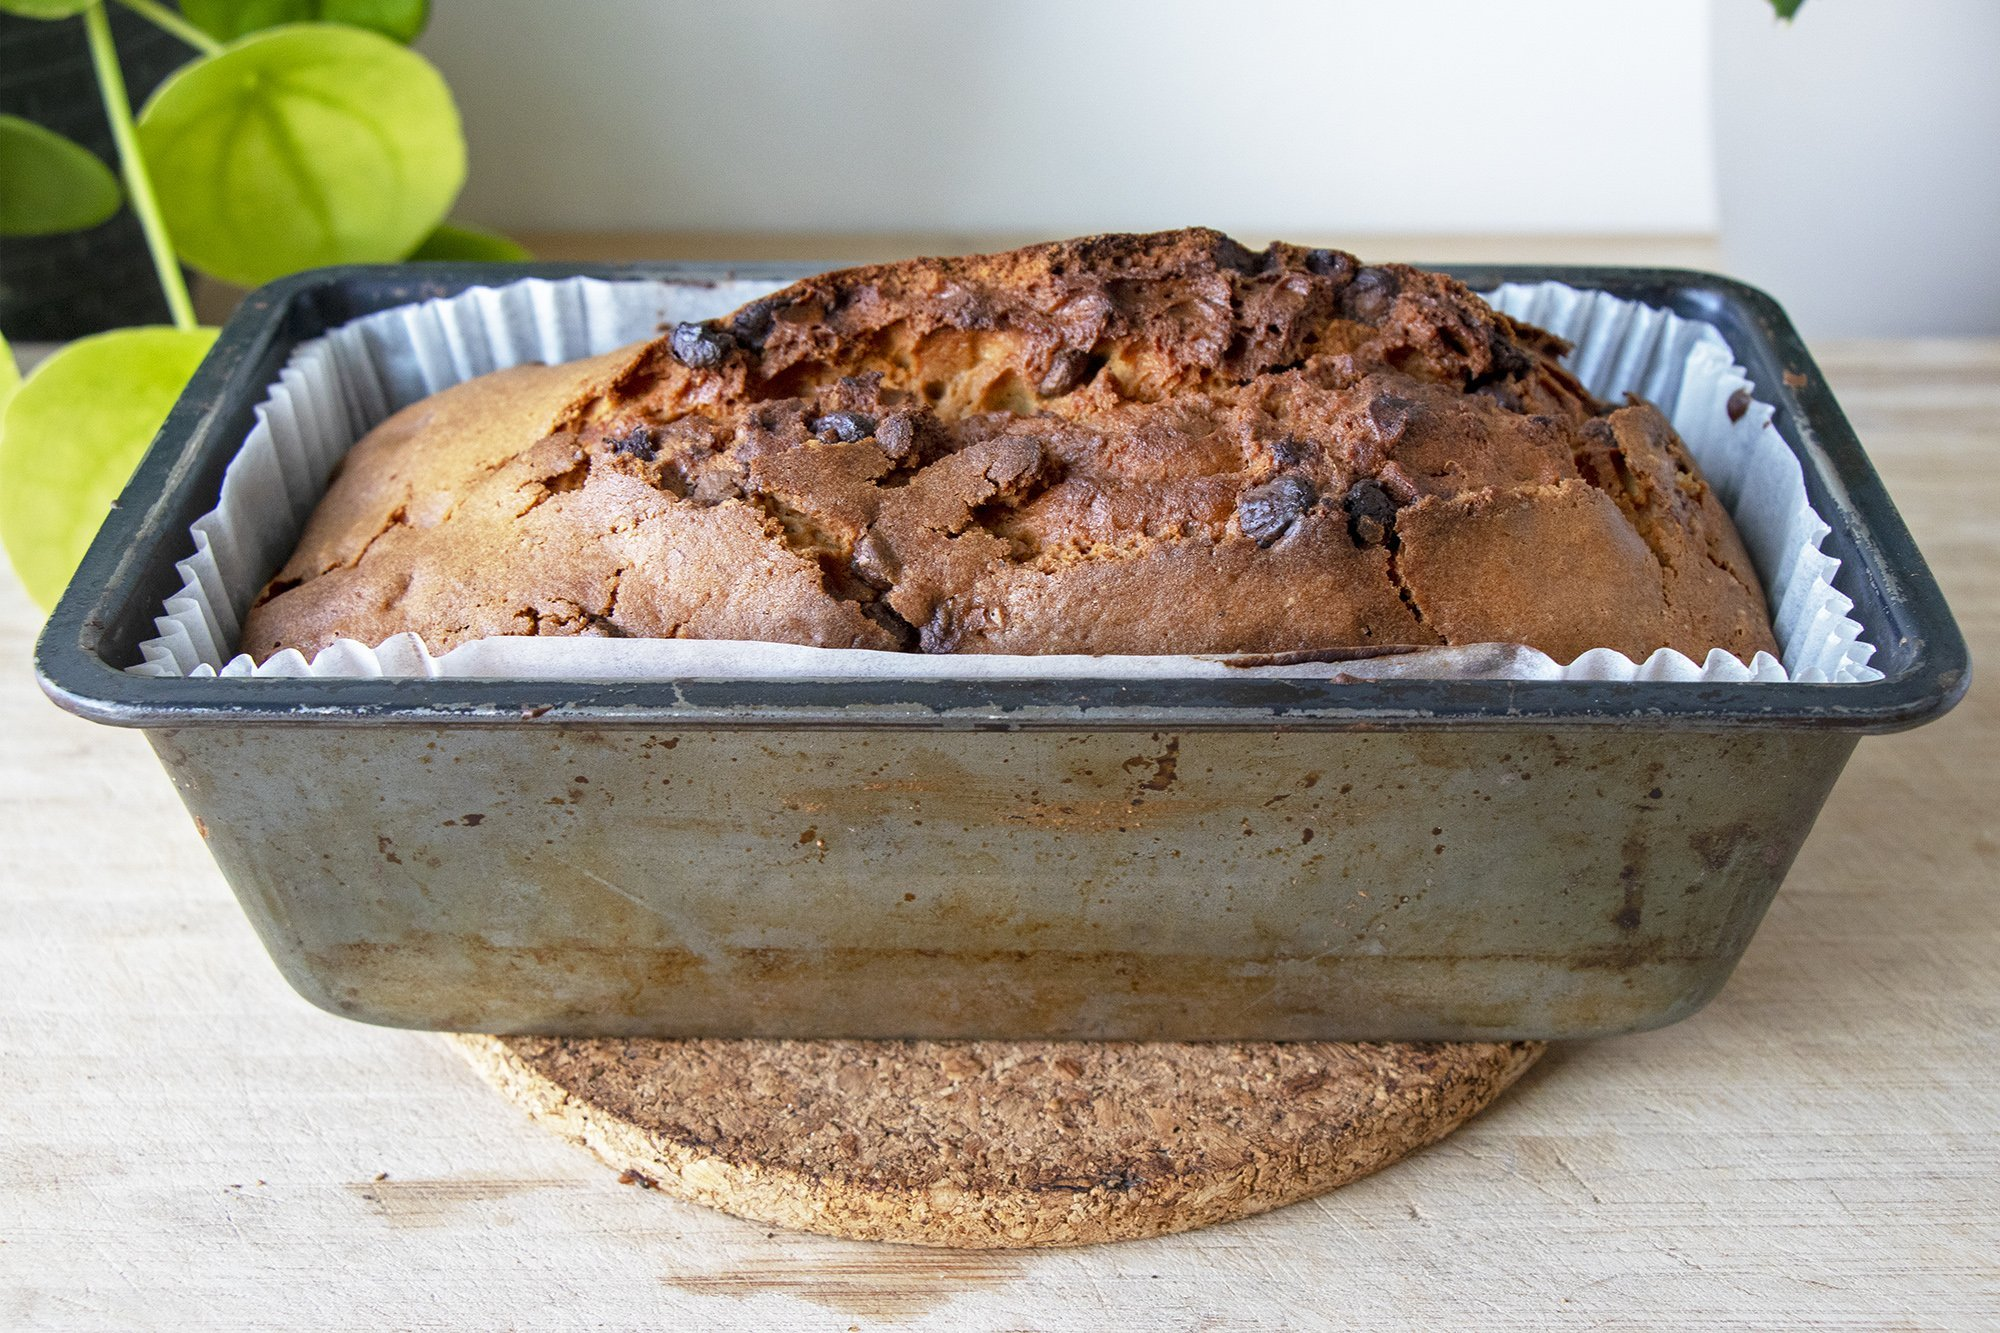 Banana bread with chocolate chips in tin